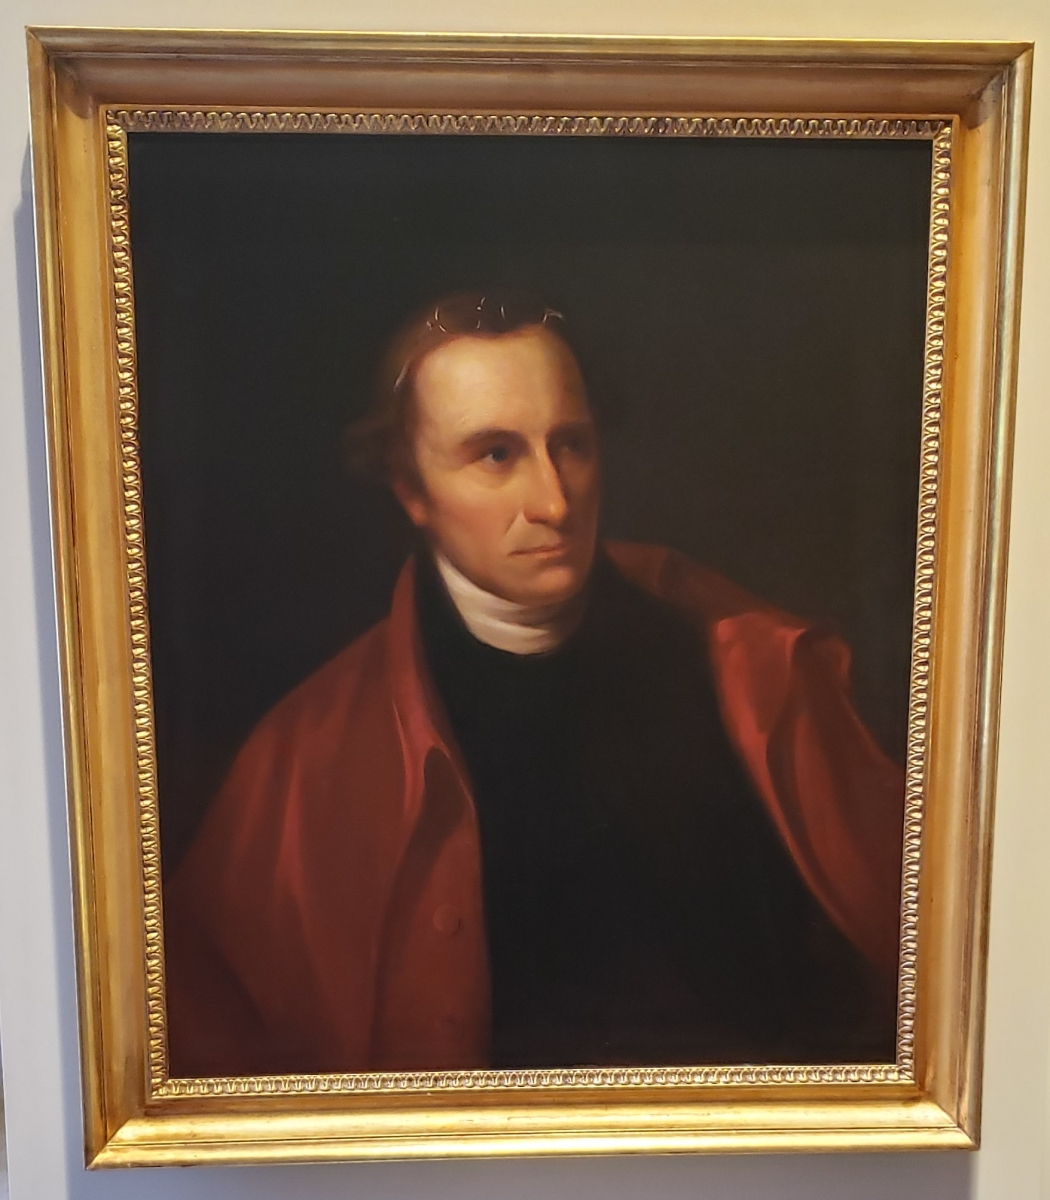 Portrait of Patrick Henry hanging in the Second Bank of the United States Portrait Gallery